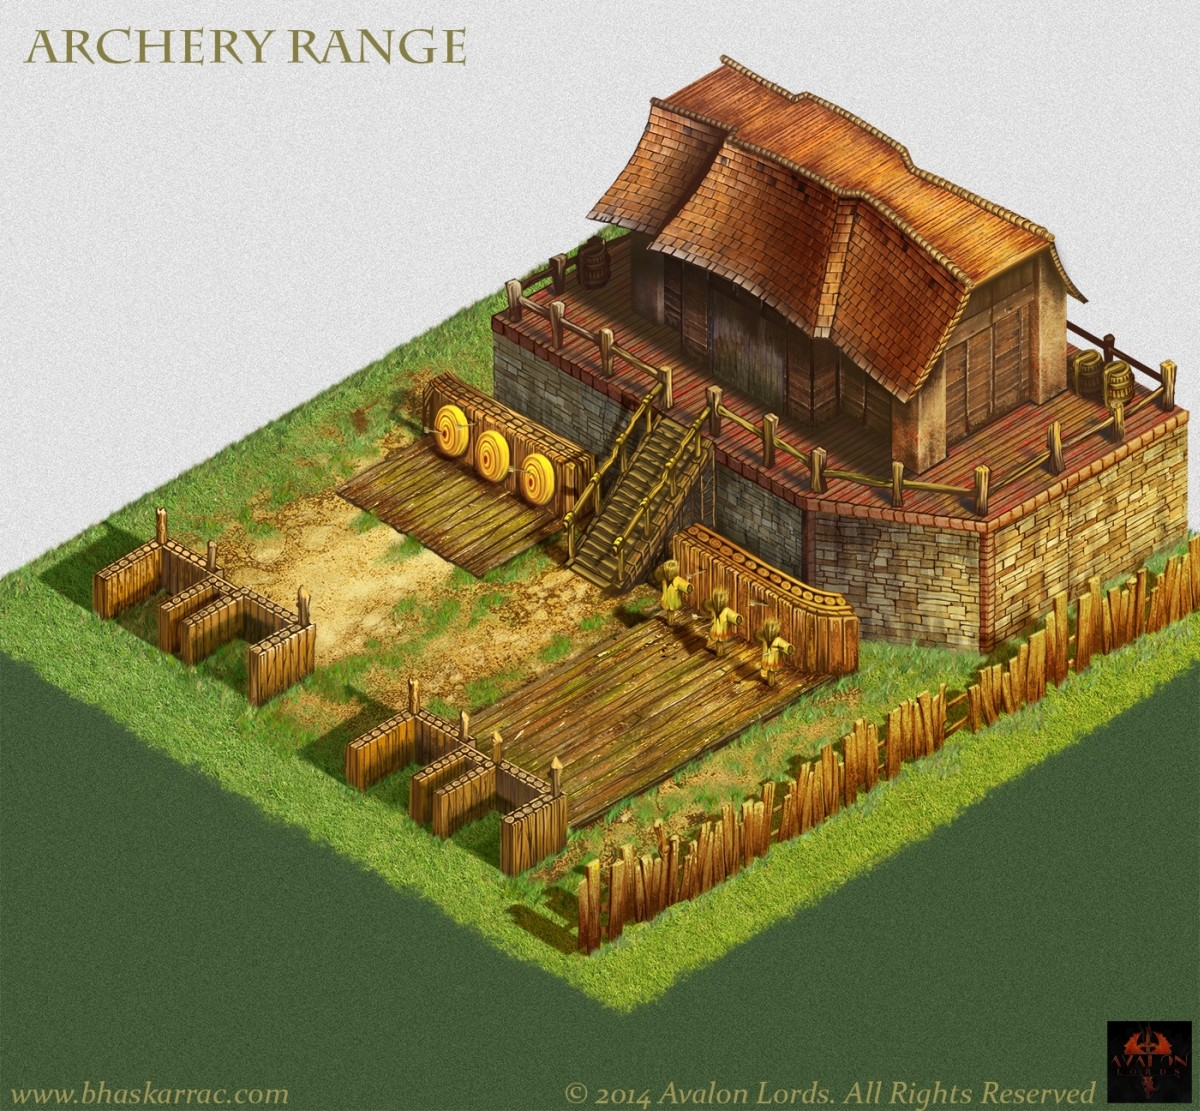 Avalon's Lord Game Concepts - Archery Concept